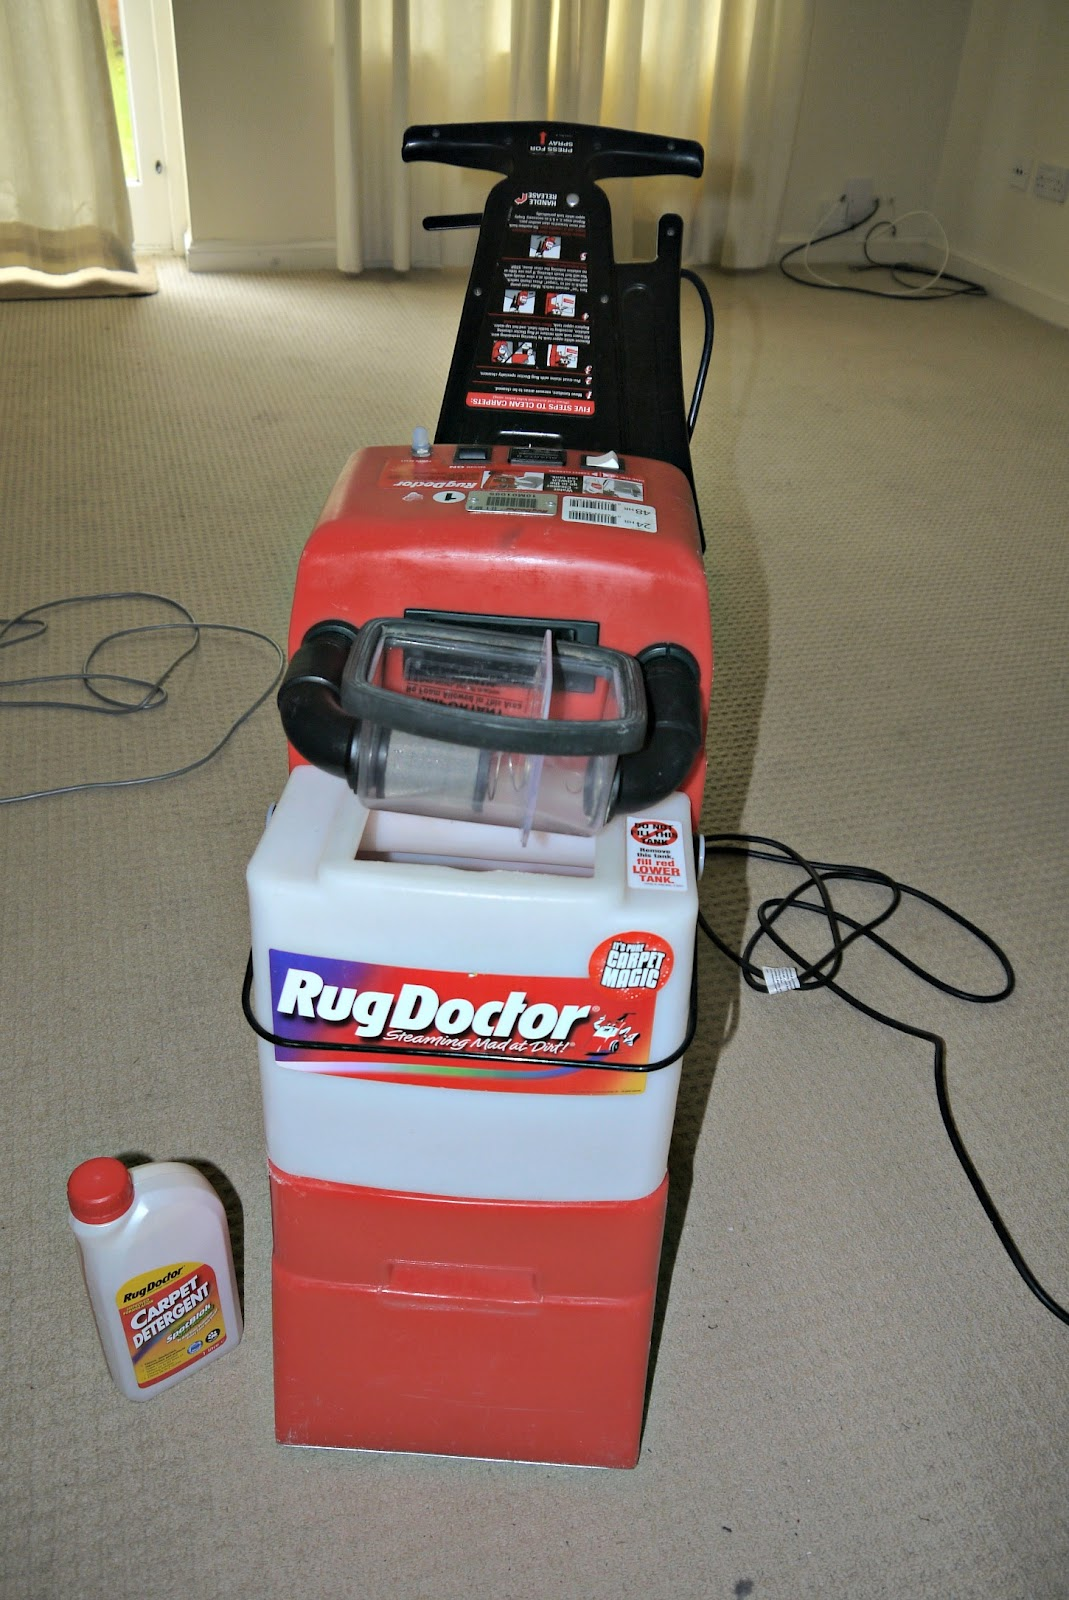 Sofa Cleaning Machine Hire Sofas Couches Cheap Inside The Wendy House Rug Doctor Review